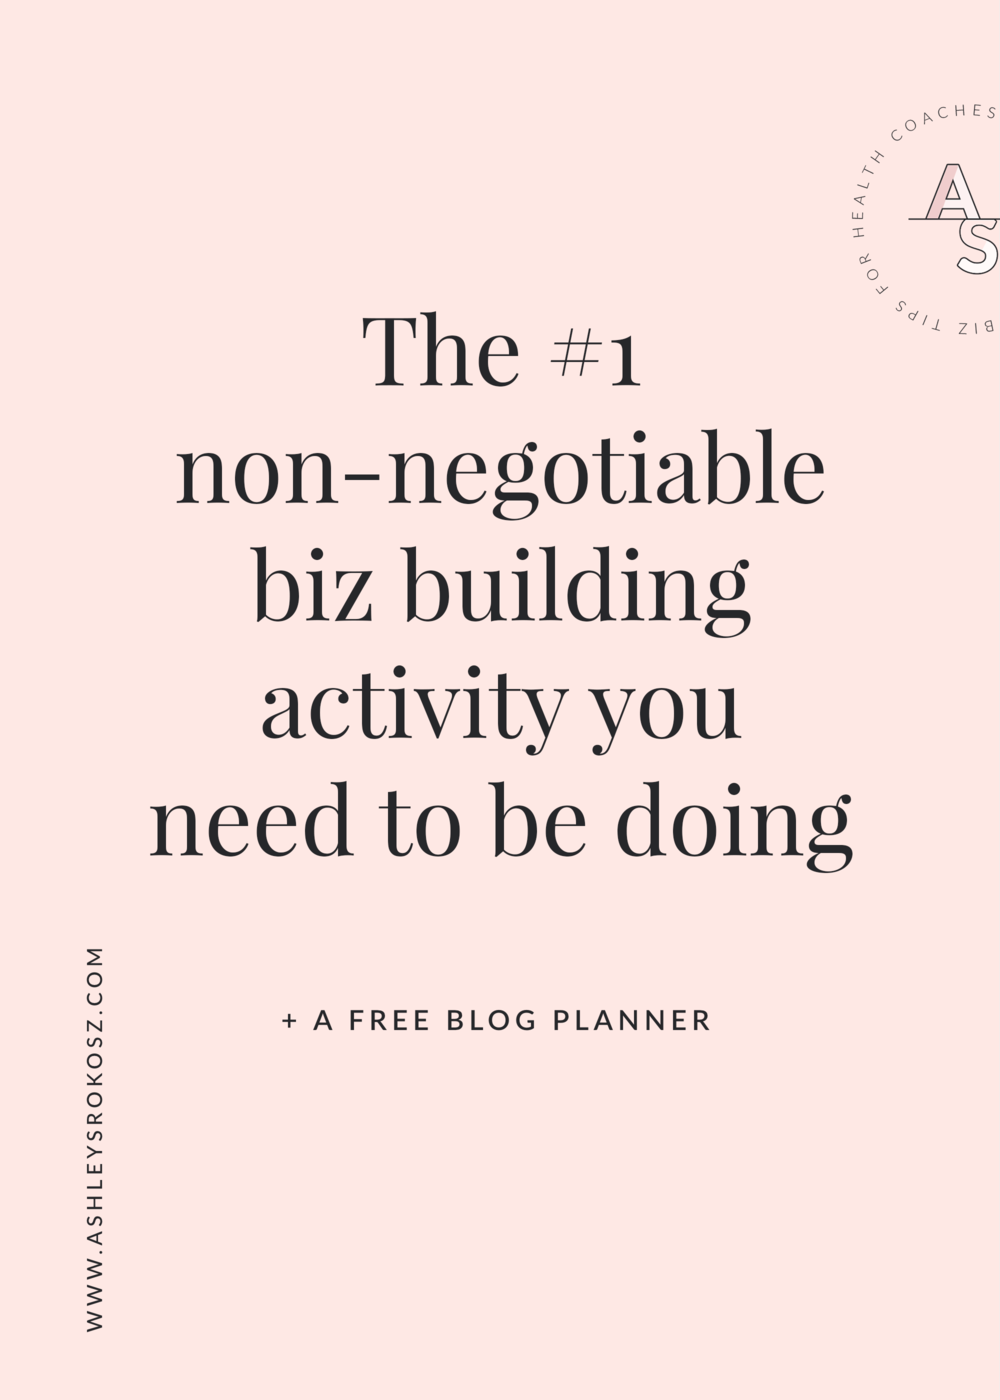 Are you a holistic nutritionist, essential oil advocate, or yoga teacher who blogs? You should be! Click to read why blogging is the #1 non-negotiable biz building activity you need to be doing as a holistic business owner PLUS a free blog post planner with an entire years' worth of blog post topic ideas!